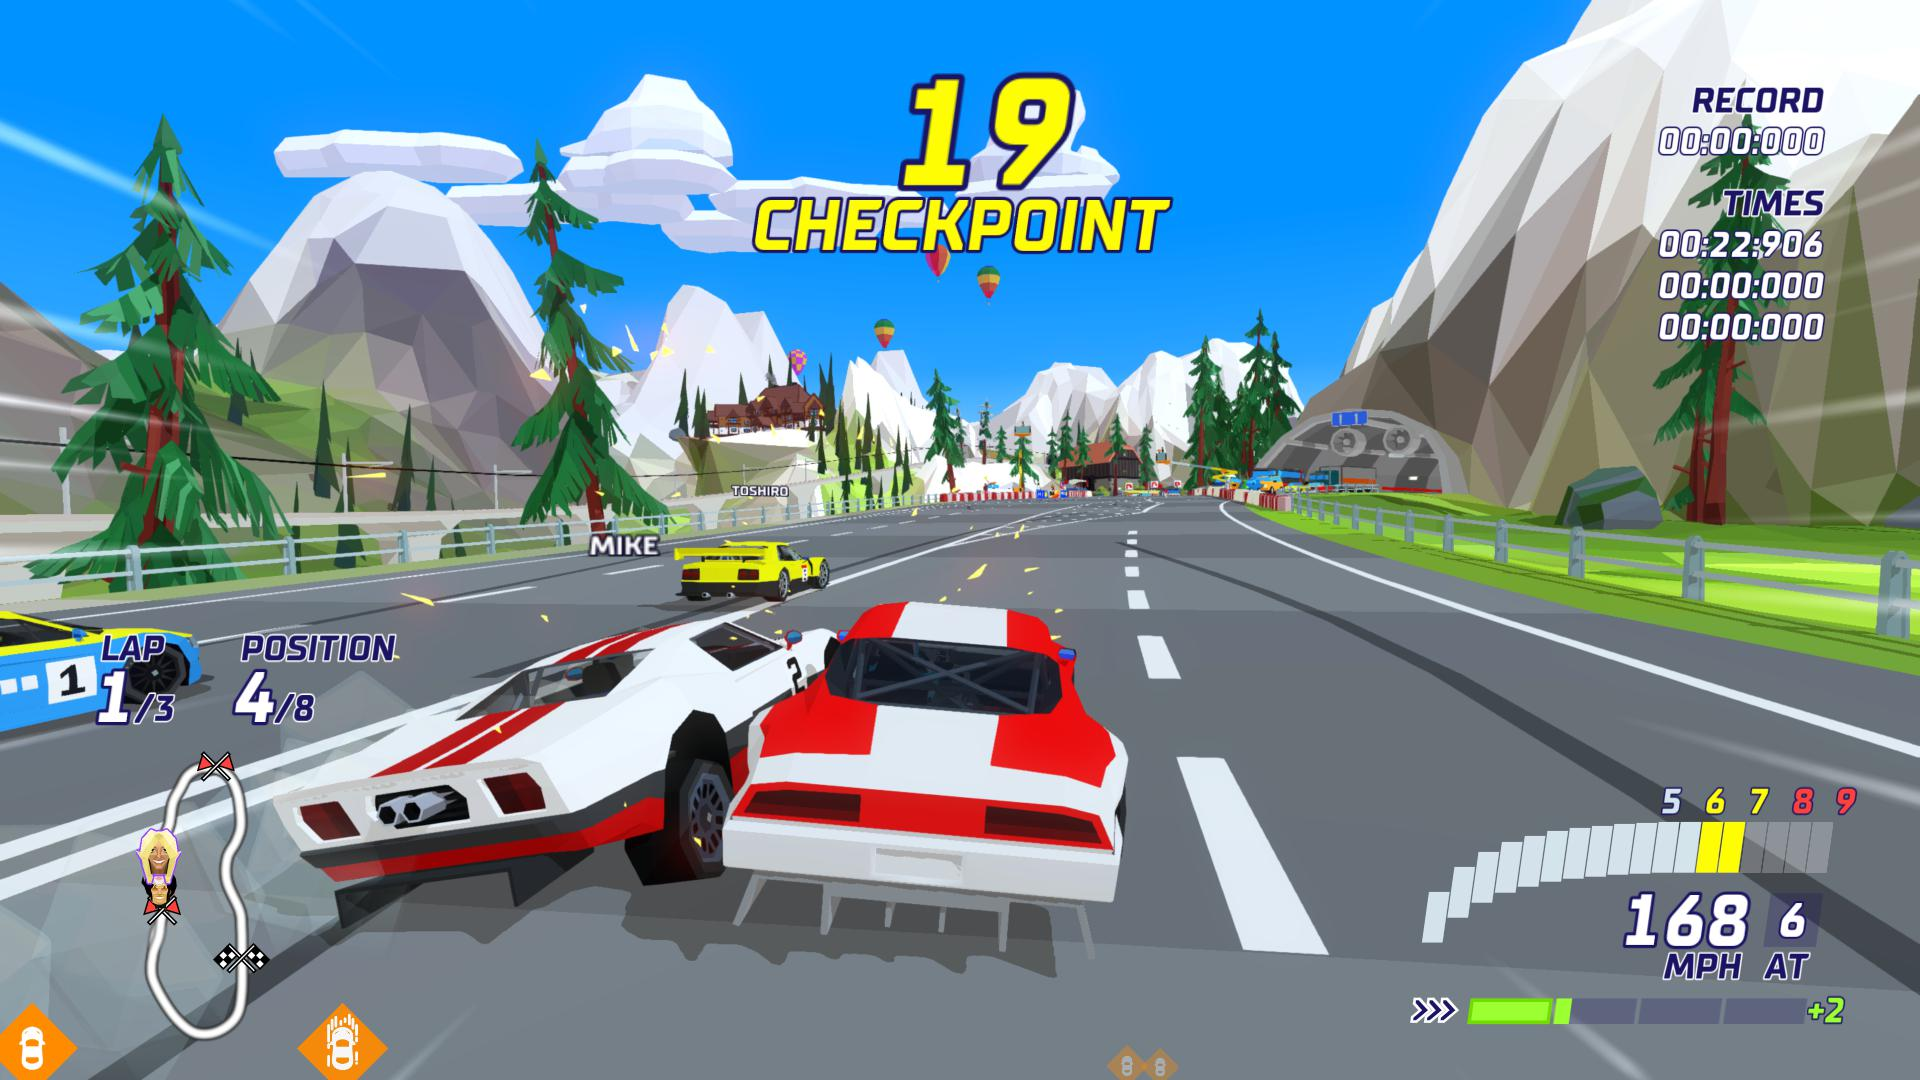 Sega blue skies and low poly cars in Hotshot Racing. Two cars are in a tussle during a race.